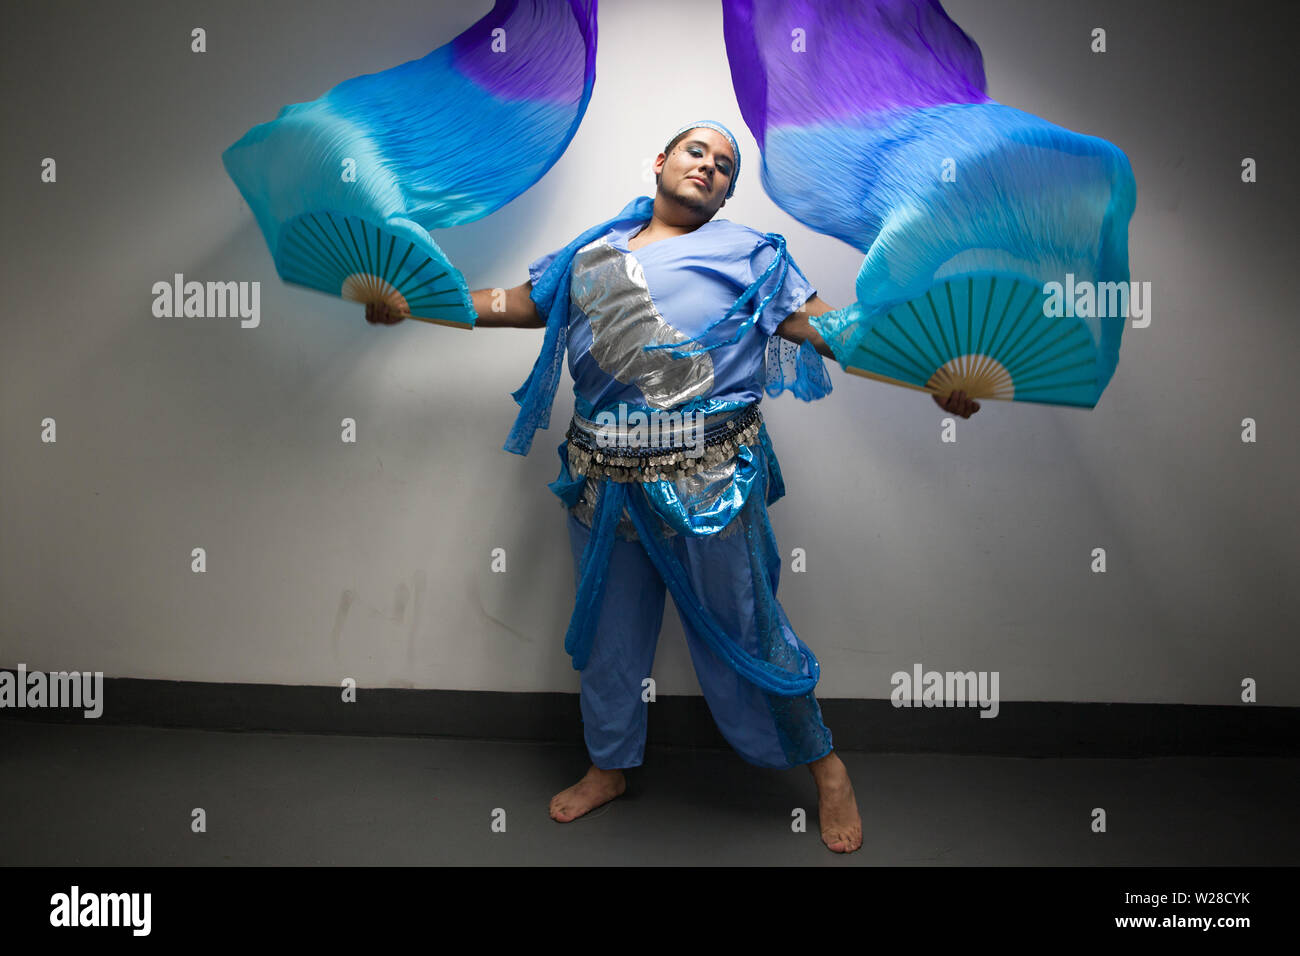 Juan Luis Vanegas Bravo, a Mexican 18 year old teenager, portrayed with a belly dance costume in Mexico City, Mexico on May 17, 2012. Juan Luis has grade three obesity, a genetic condition he inherited from his father who died of morbid obesity 6 years ago. He became obese at age 3 and reached his maximum weight of 146 kilos at age 16 when he decided to find a way to treat his disease and prevent an early death like his father. He was suffering from diabetes and hypertension when a doctor proposed he get a bariatric surgery. In 2009 he received the surgery and was able to lose weight and adopt - Stock Image